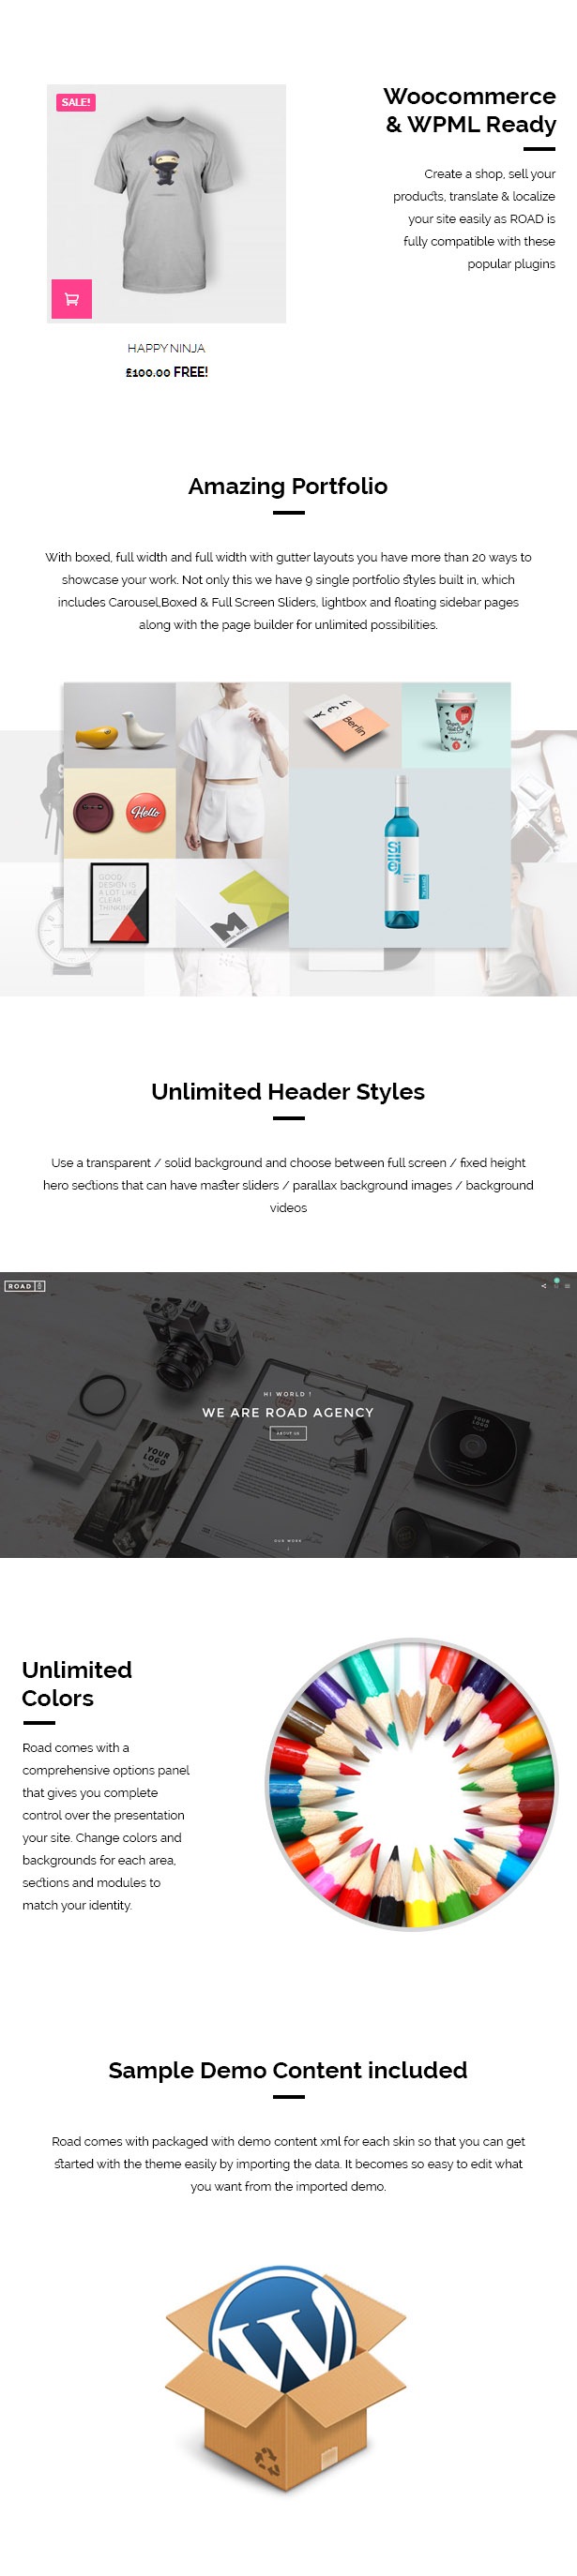 Road - Agency / Photography Portfolio Theme